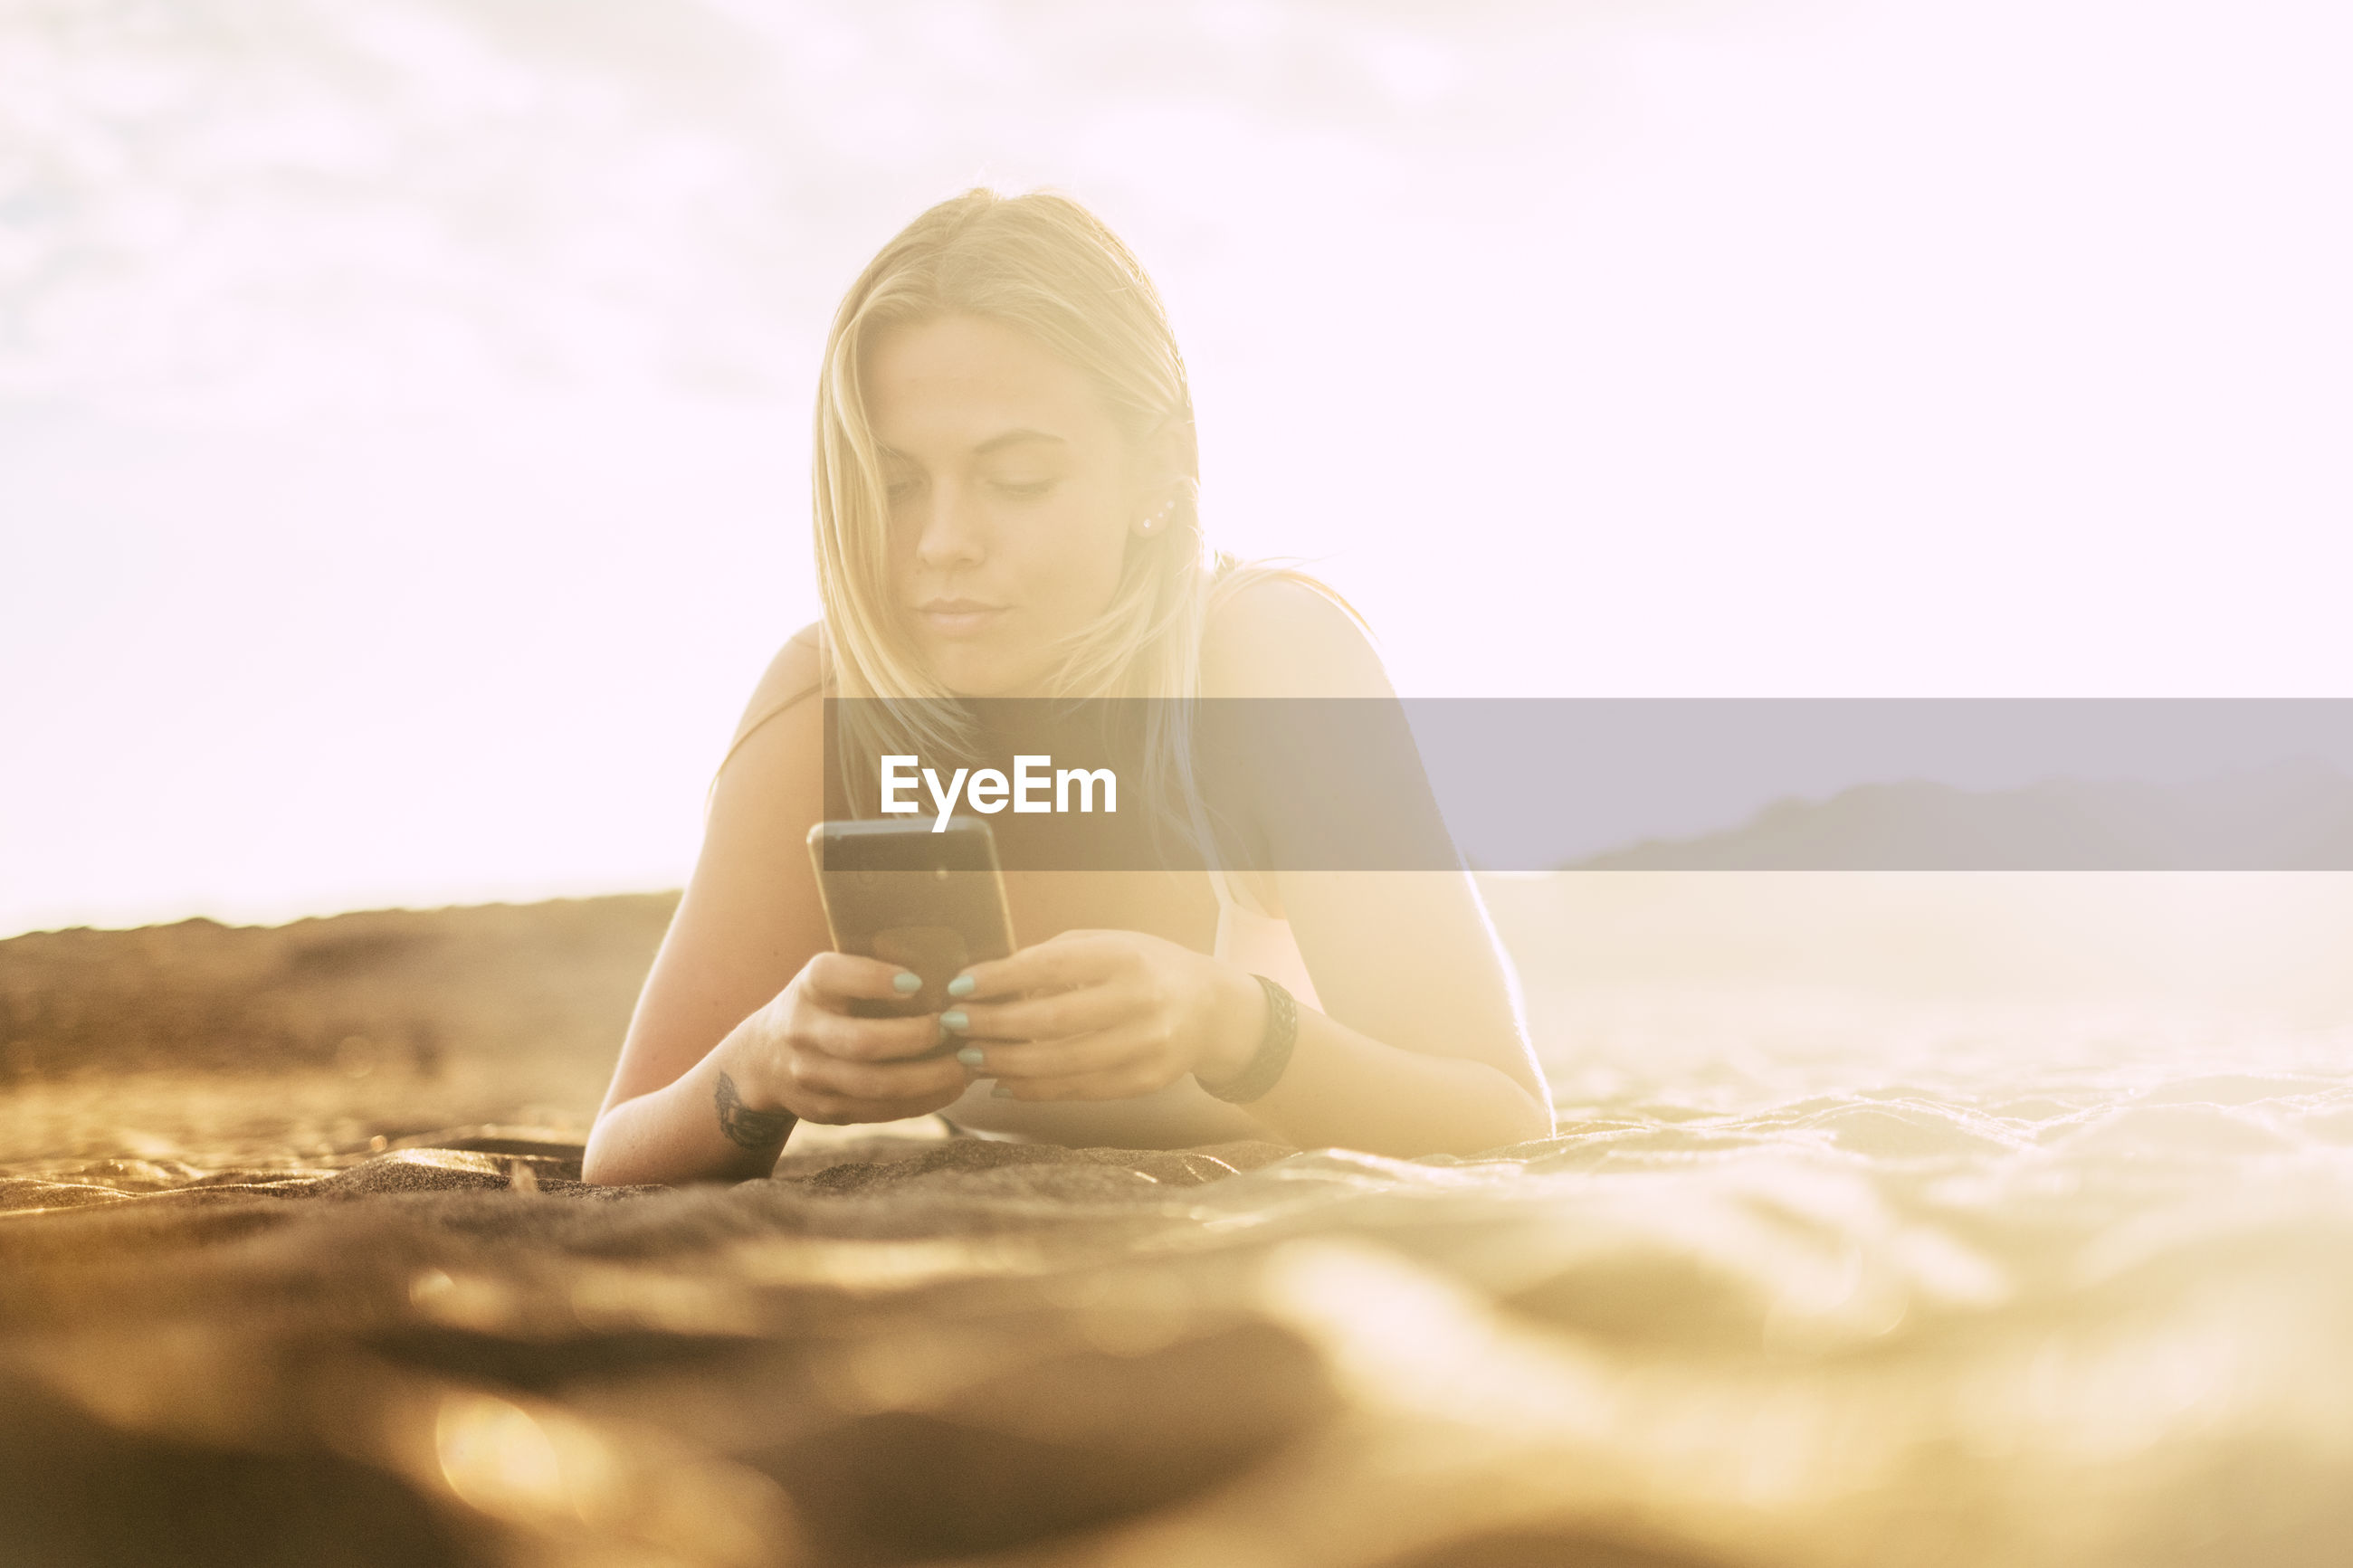 Surface level of young woman using phone while lying on sand at desert